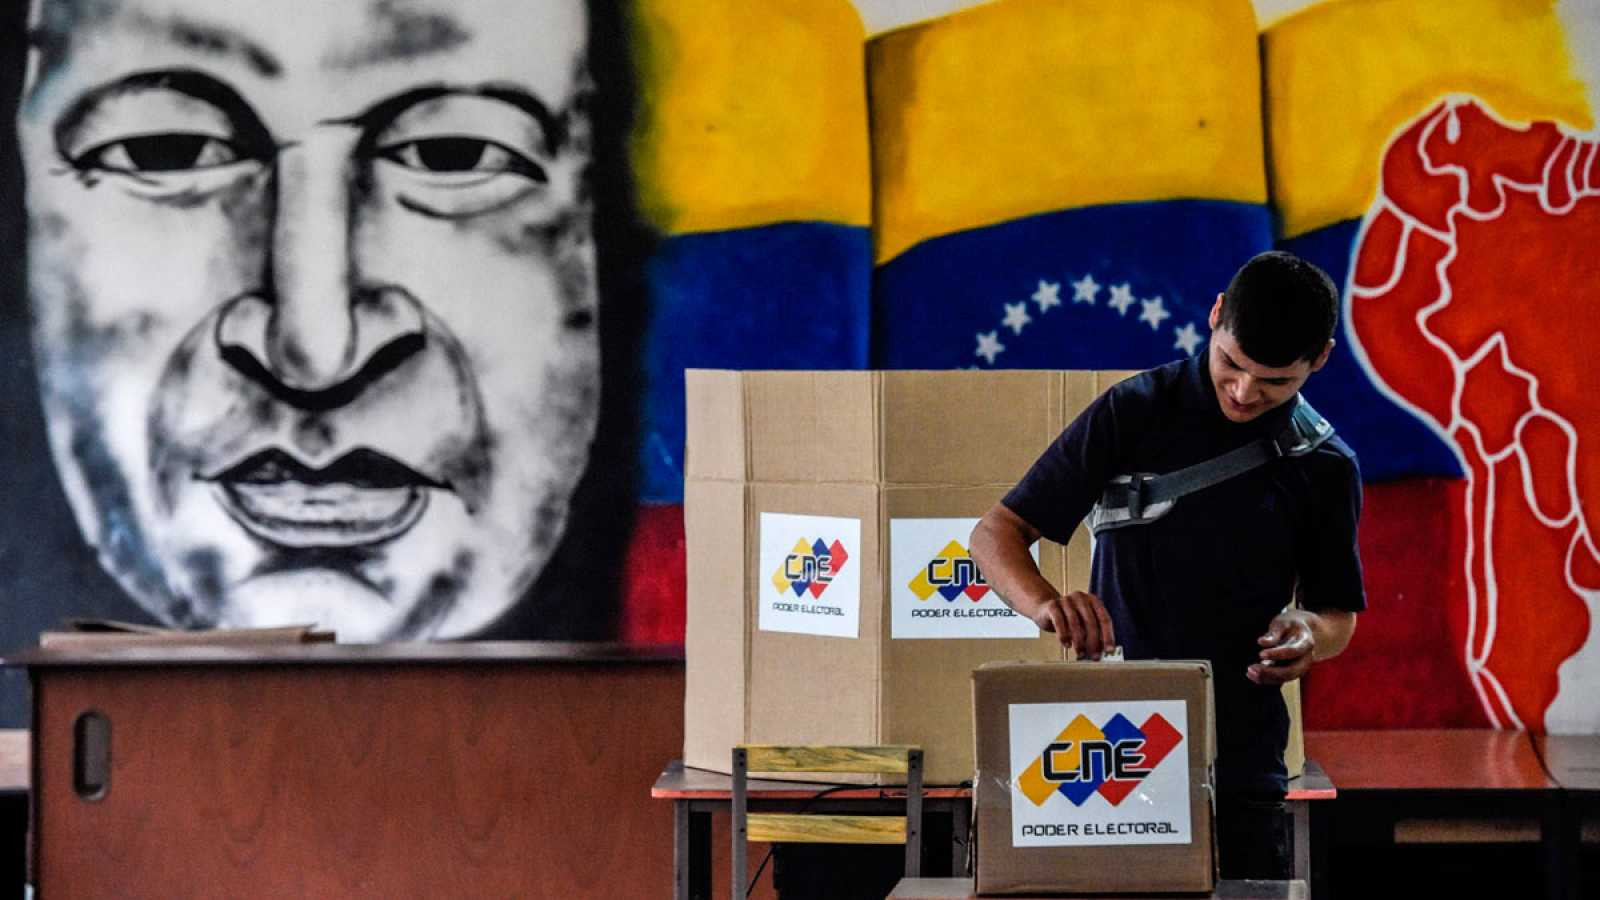 What Conditions Would Allow Us to Trust an Election? | Caracas Chronicles